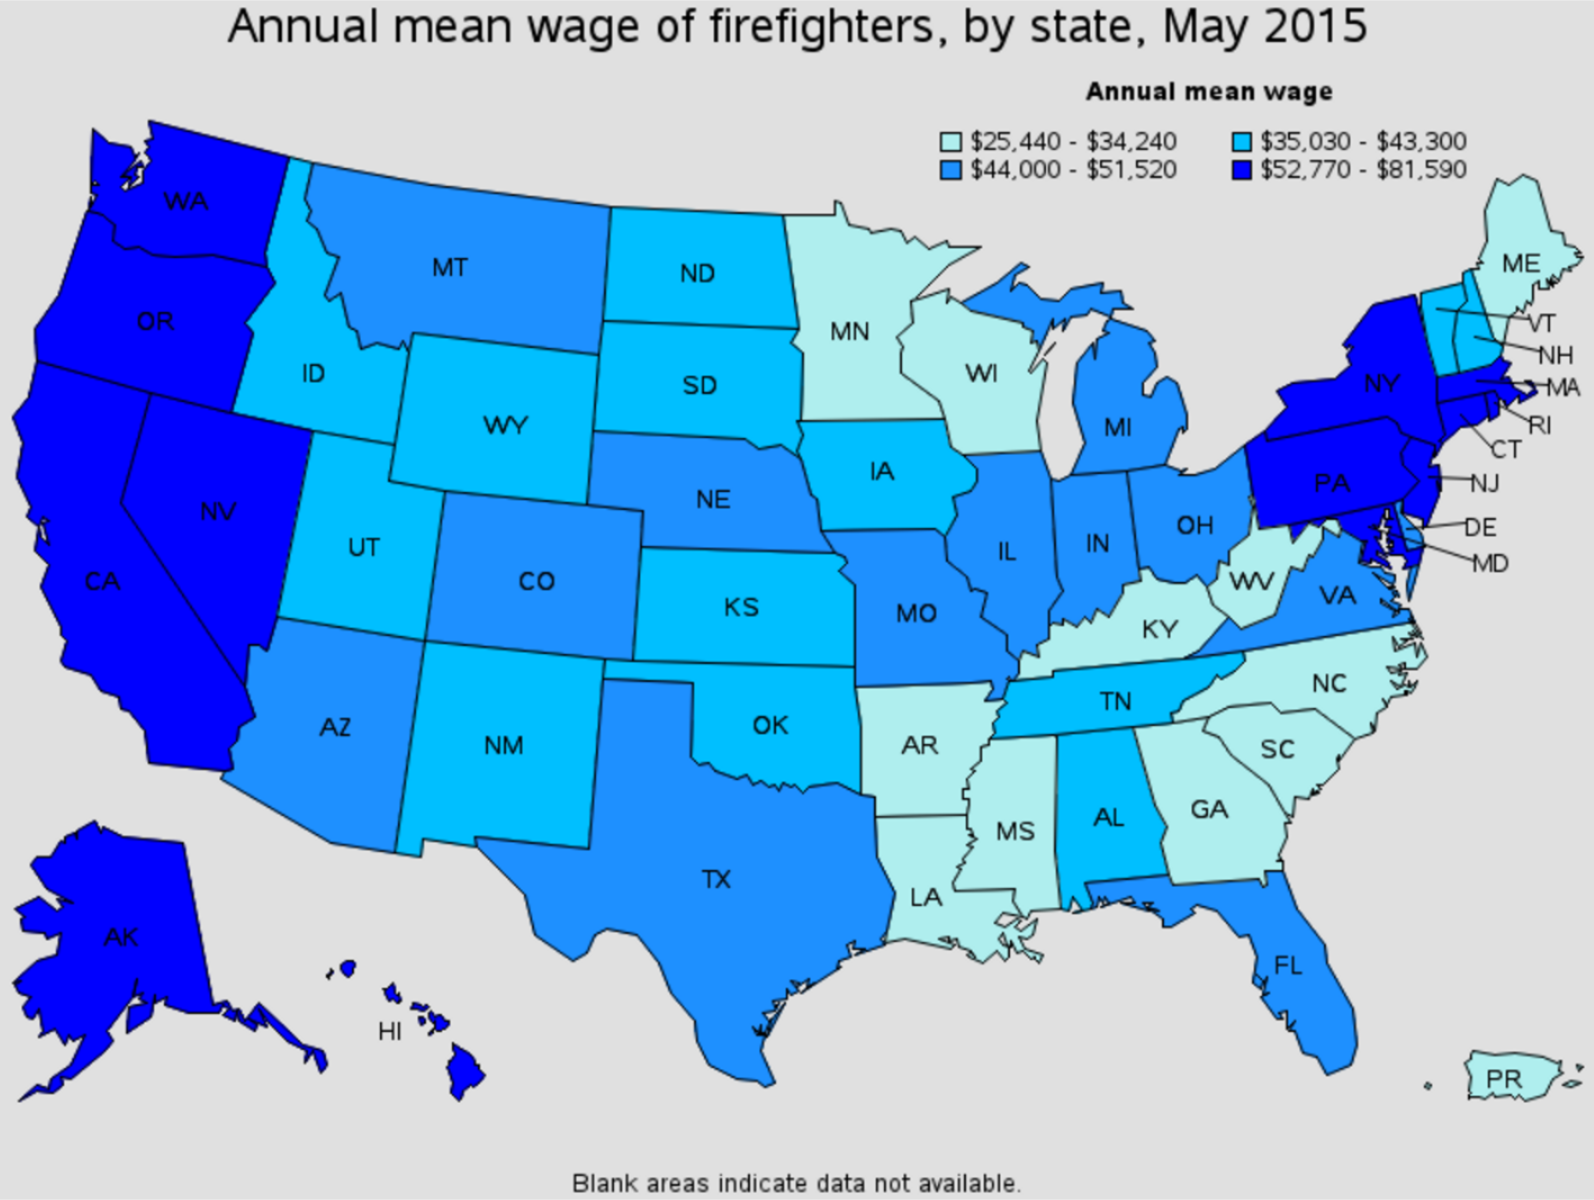 firefighter average salary by state Middletown Springs Vermont